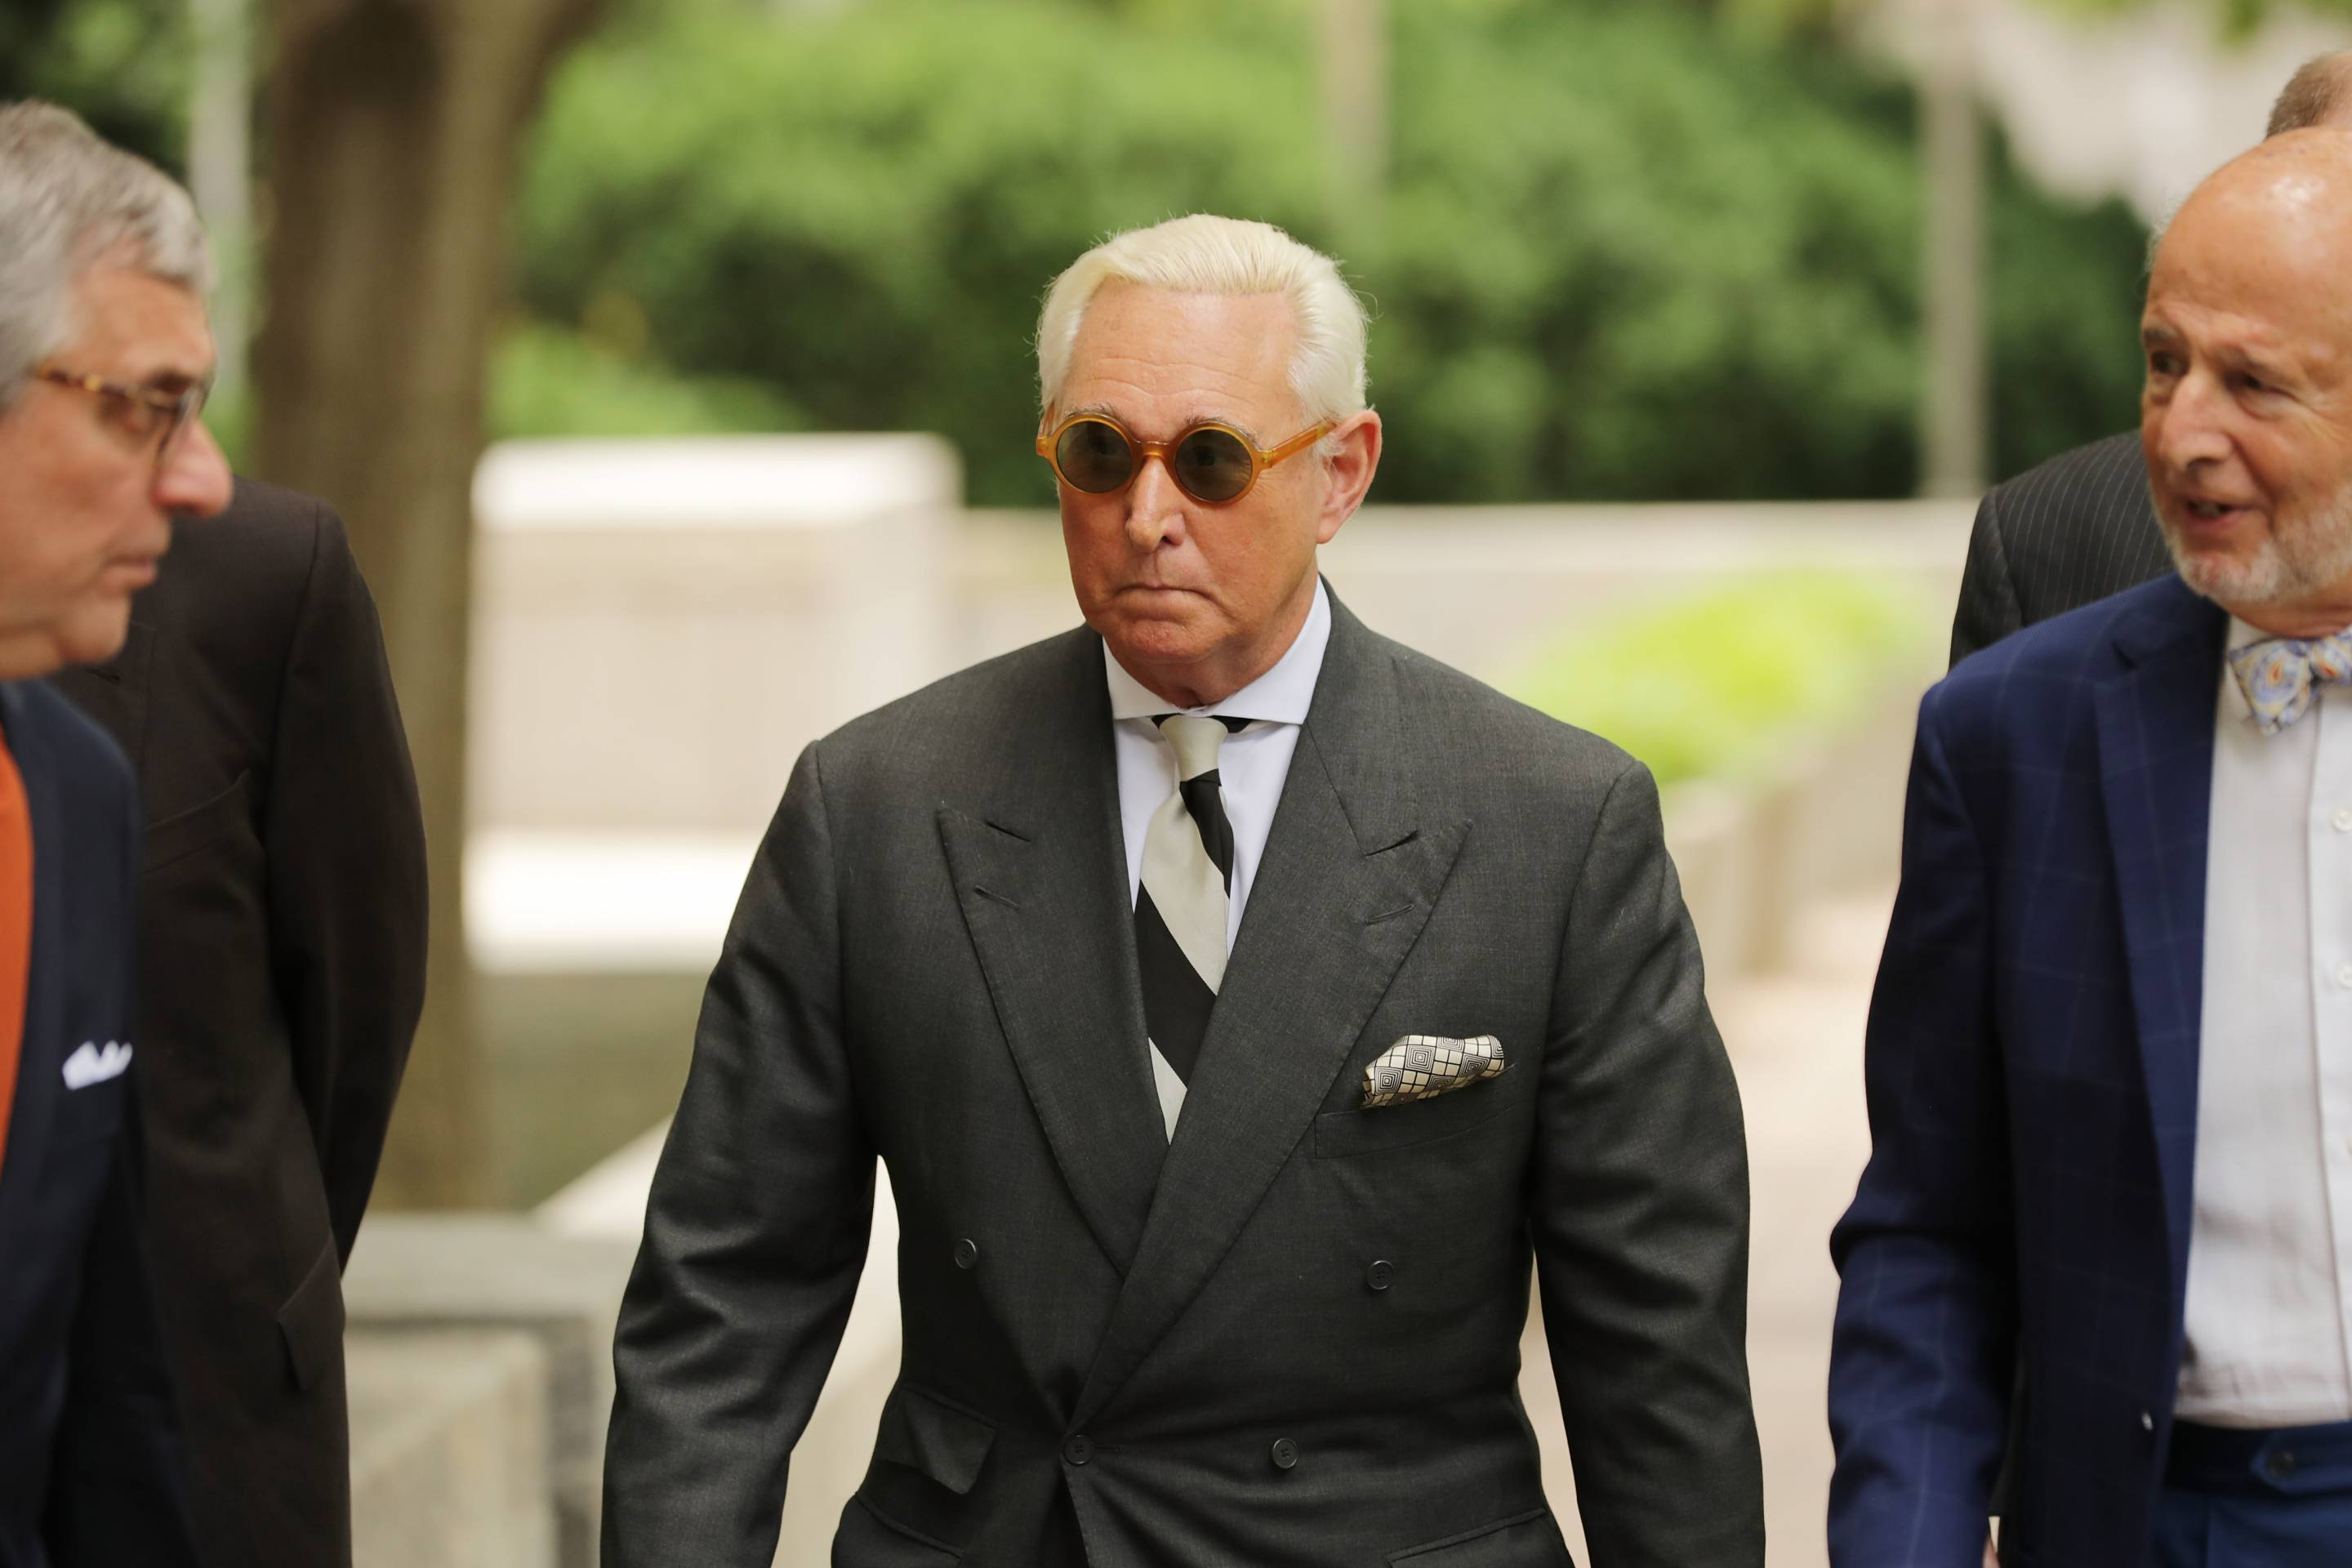 Trump Political Advisor Roger Stone Returns To Court In Effort To Dismiss Charges